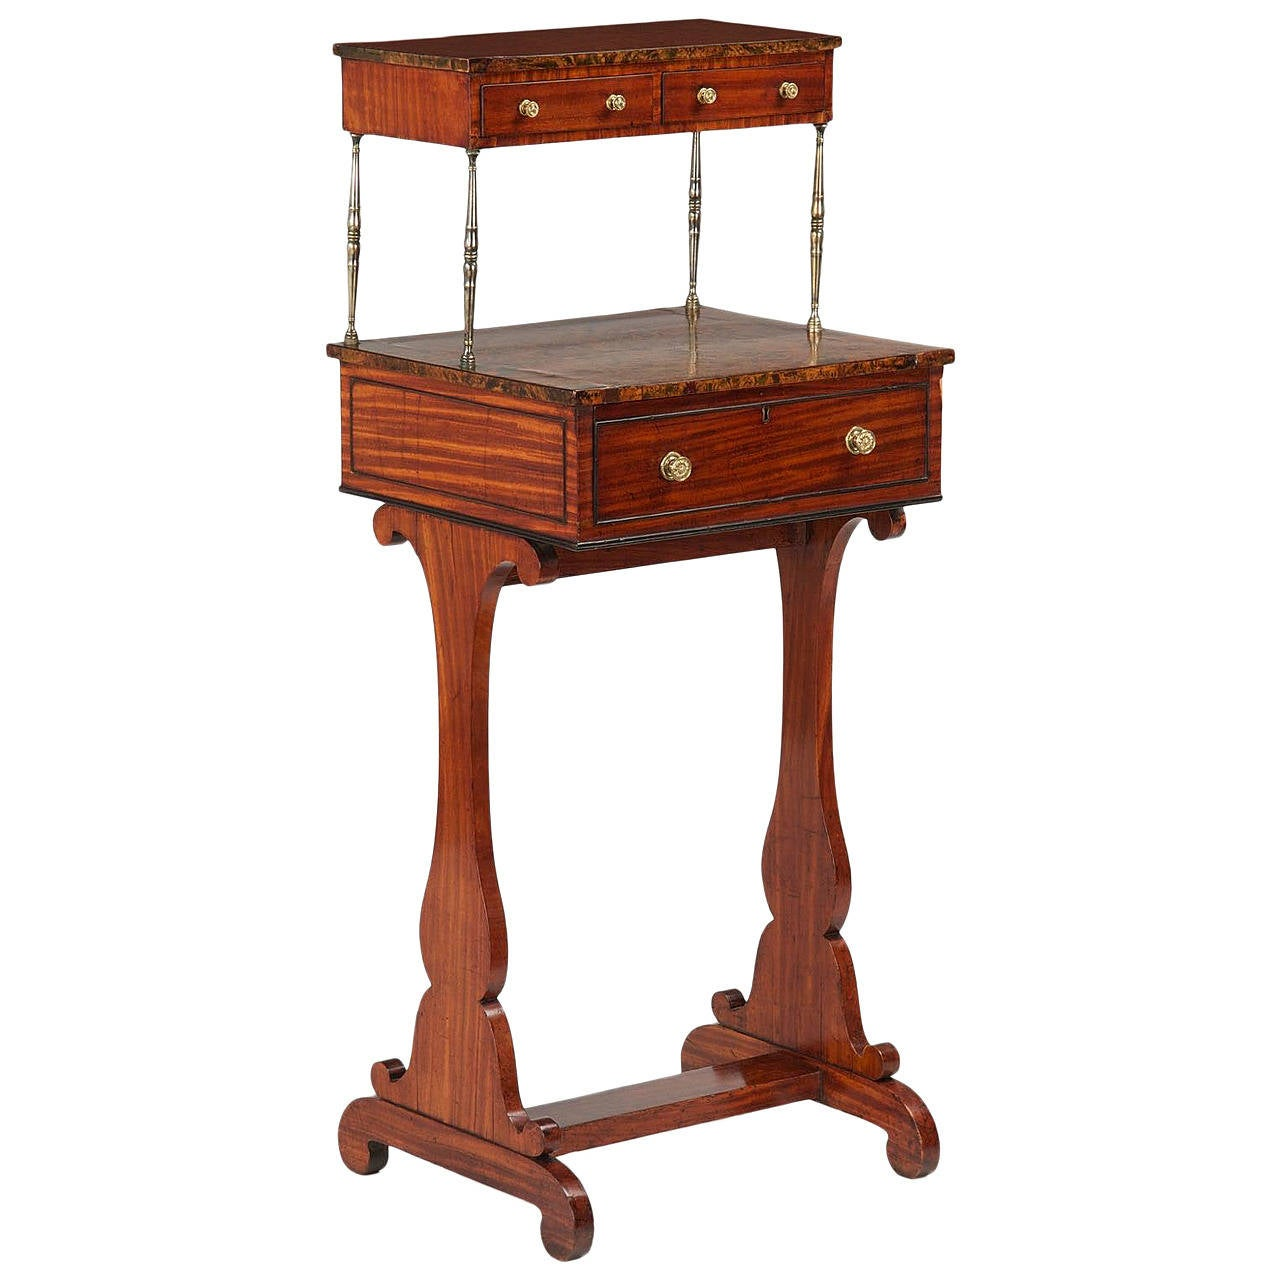 Petite English Regency Mahogany and Burl Walnut Writing Desk, 19th Century